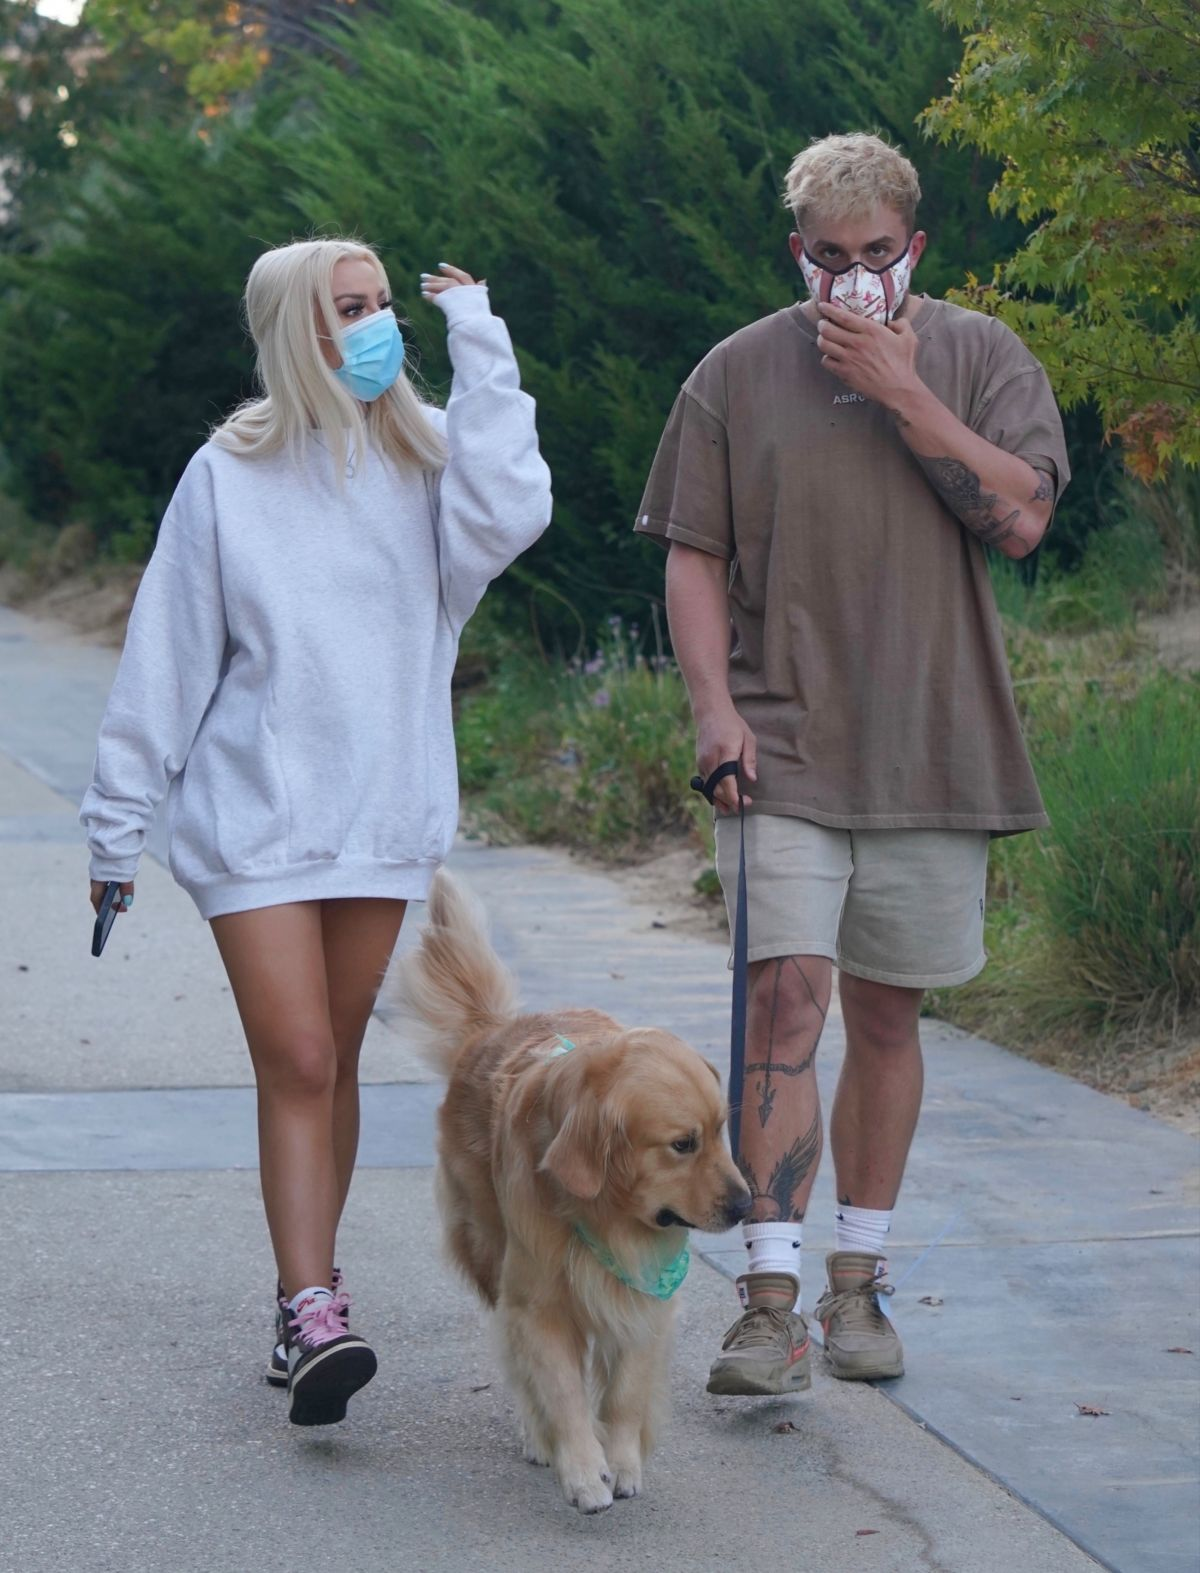 Tana Mongeau Jake Paul Out With Their Dog Calabasas